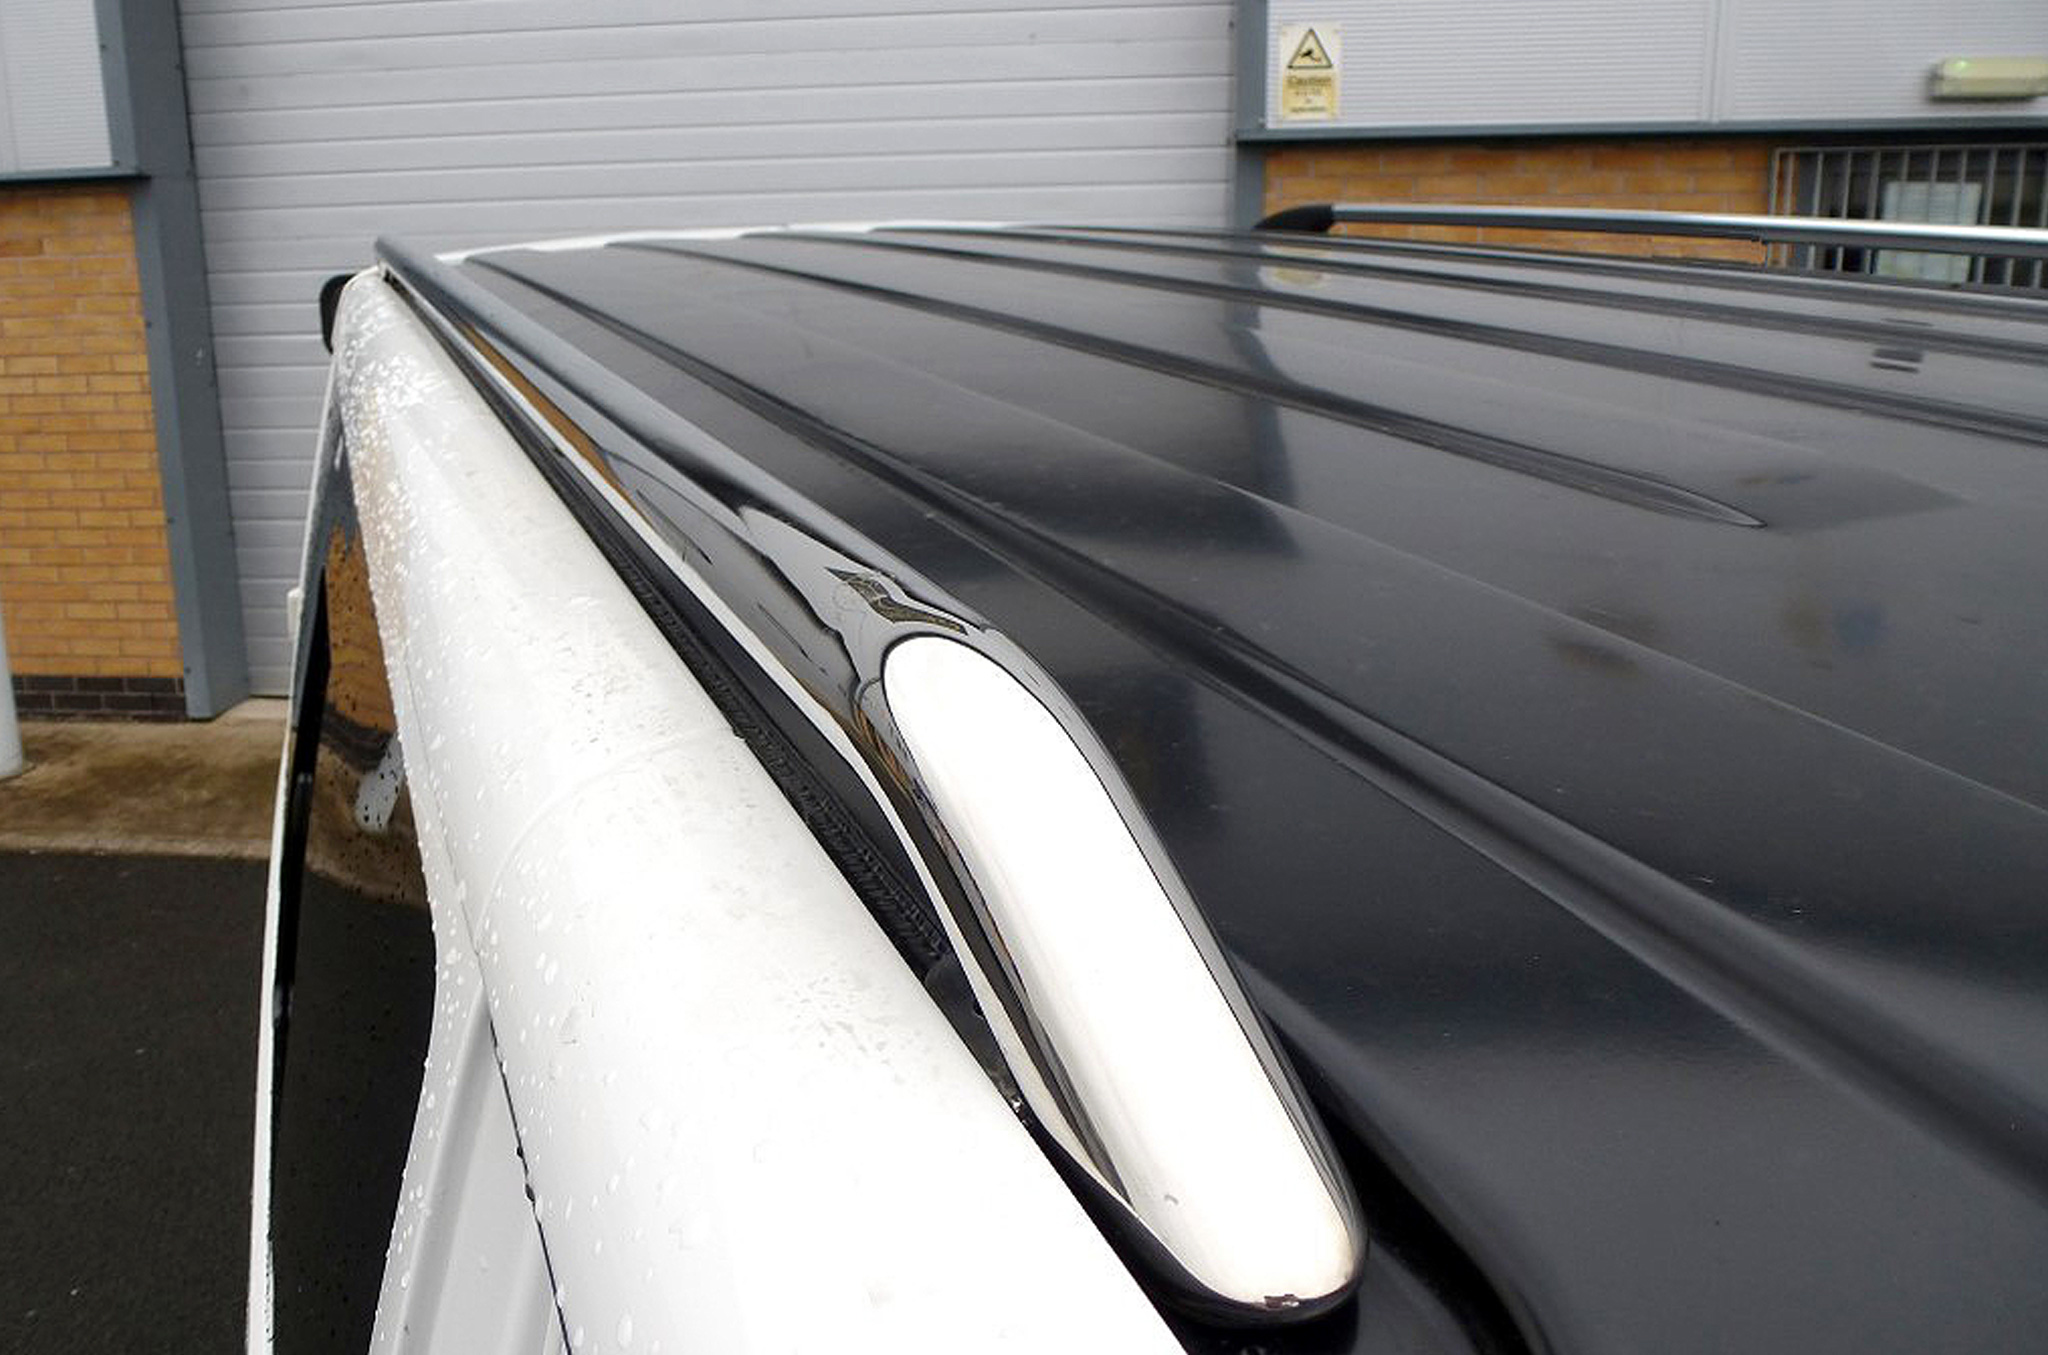 VW T5 LWB Transporter Roof Rails OE Genuine Style Stainless Steel Roof Bars